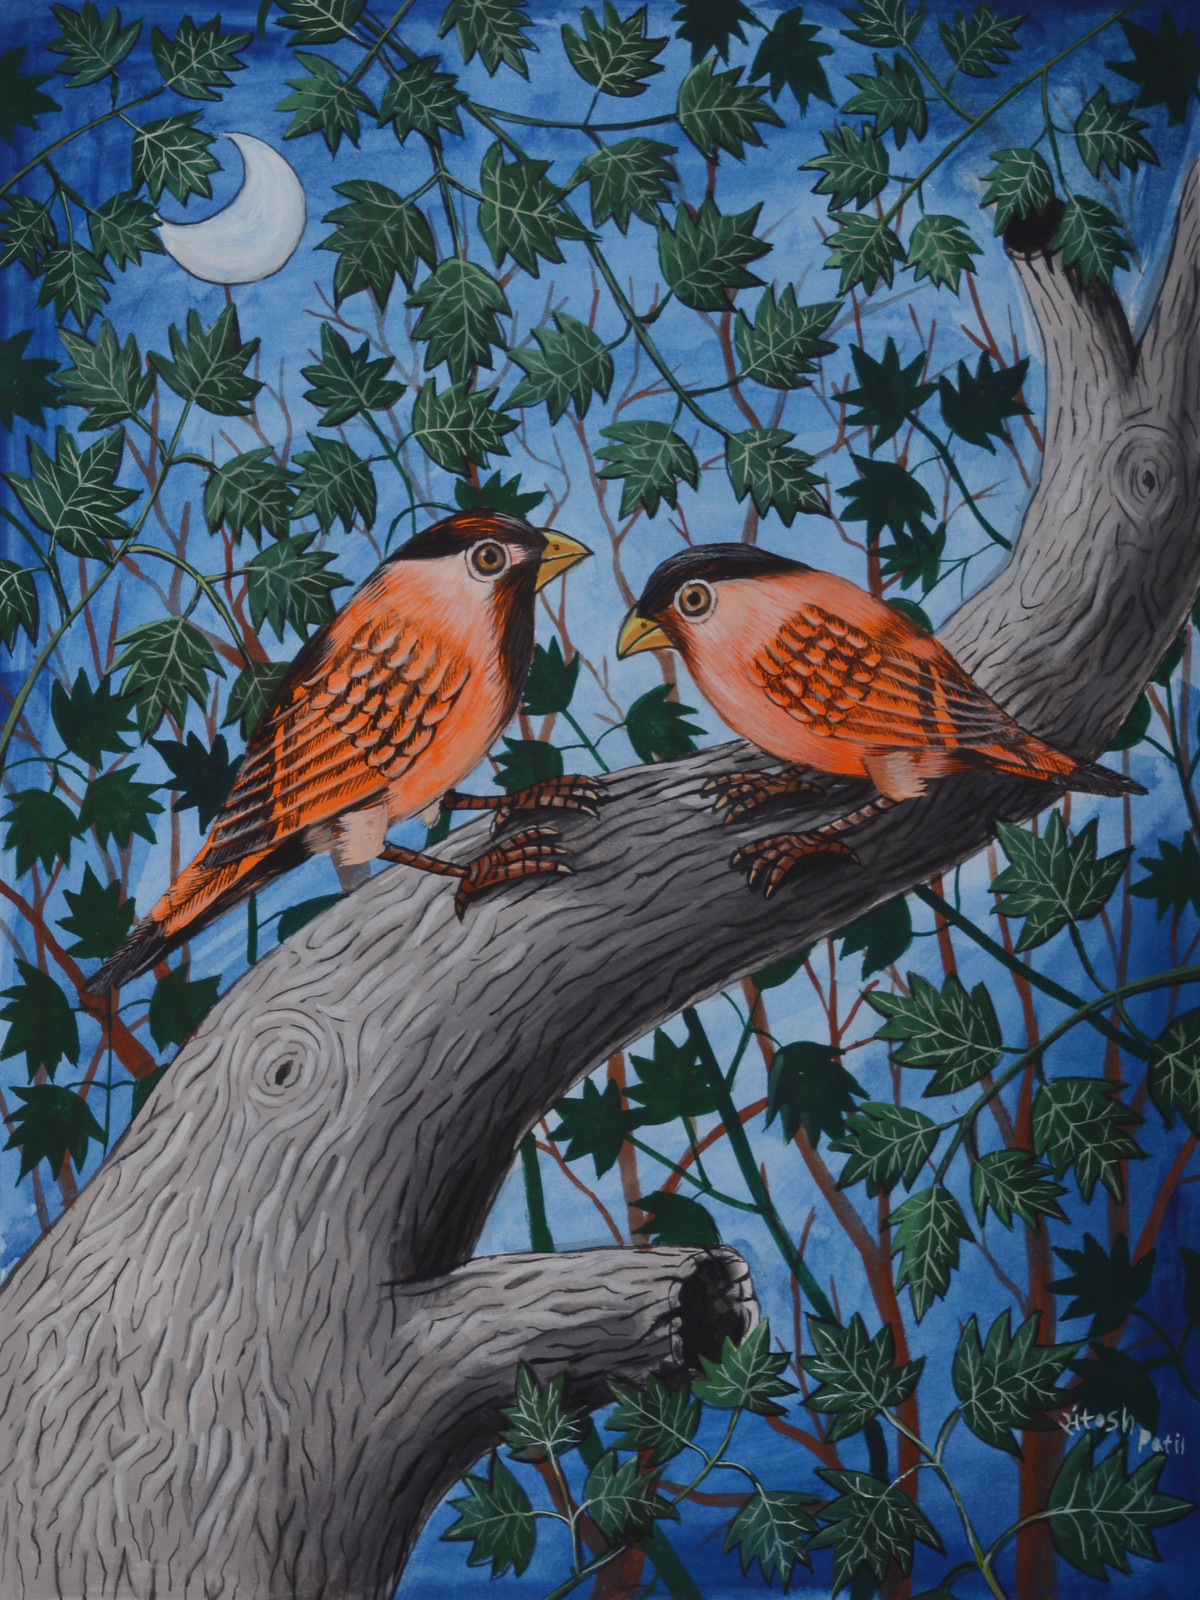 Birds Painting 37 by santosh patil, Decorative Painting, Watercolor on Paper, Green color